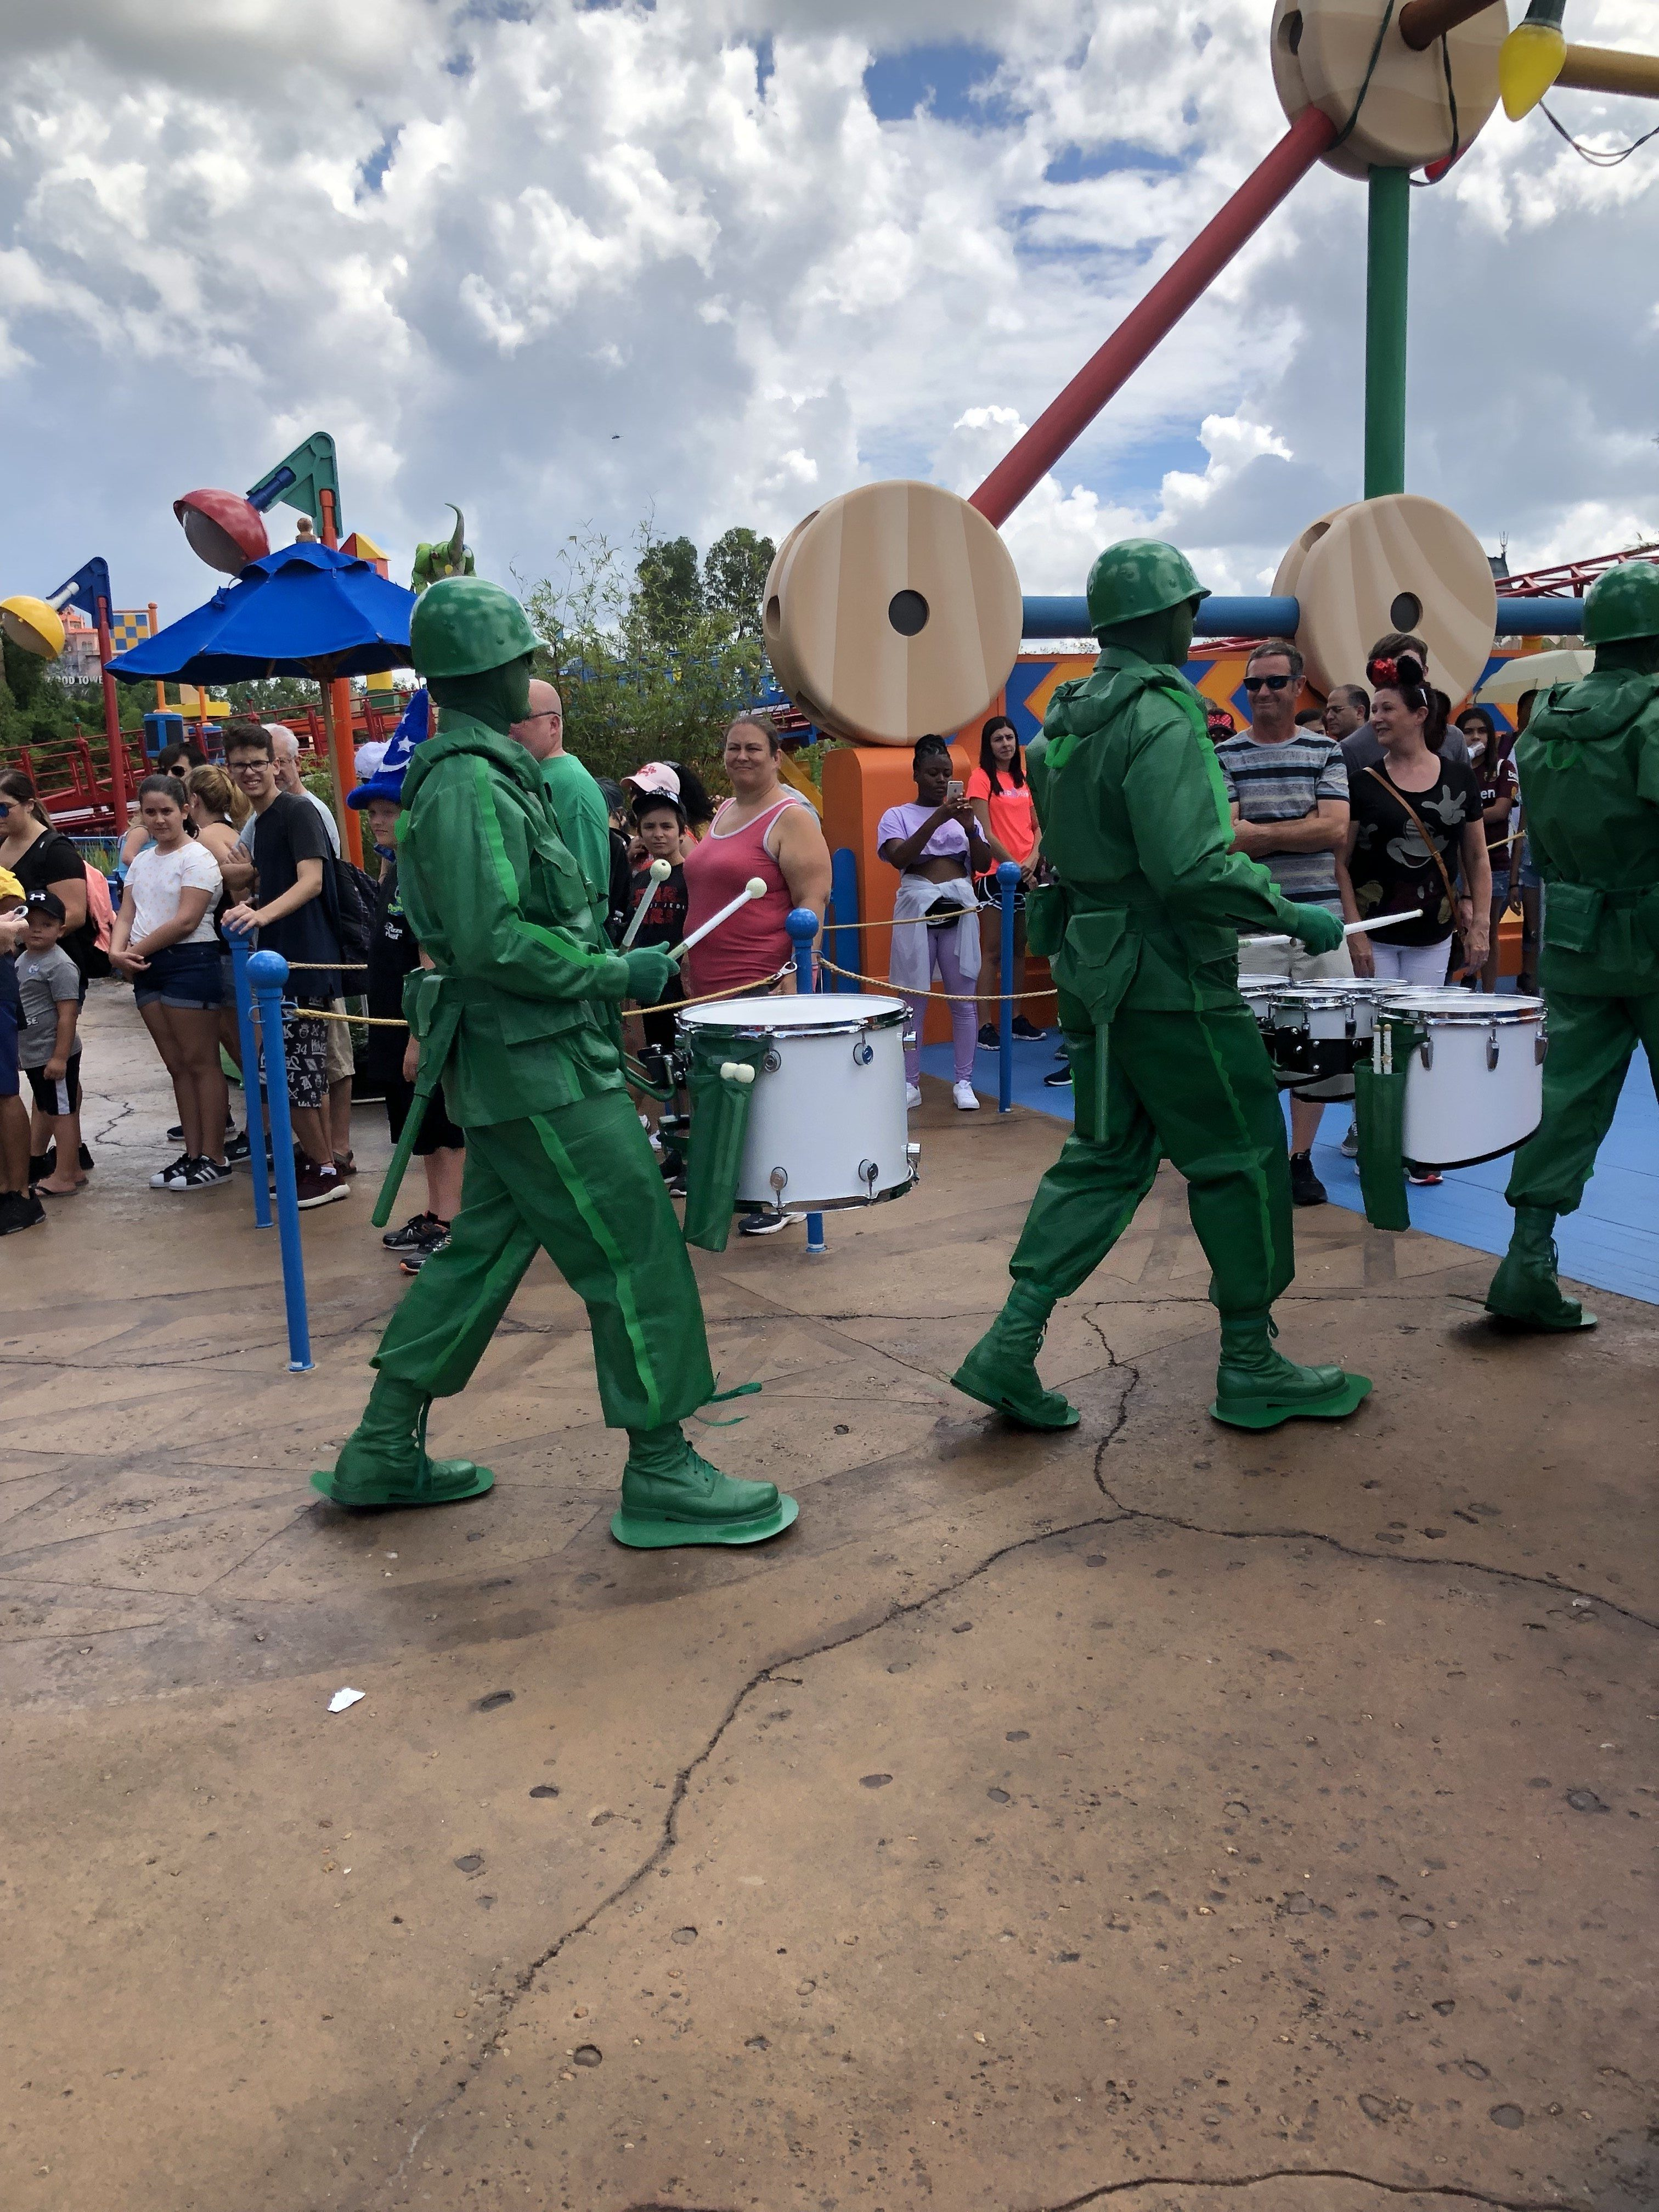 The Green Army Men marching through Toy Story Land